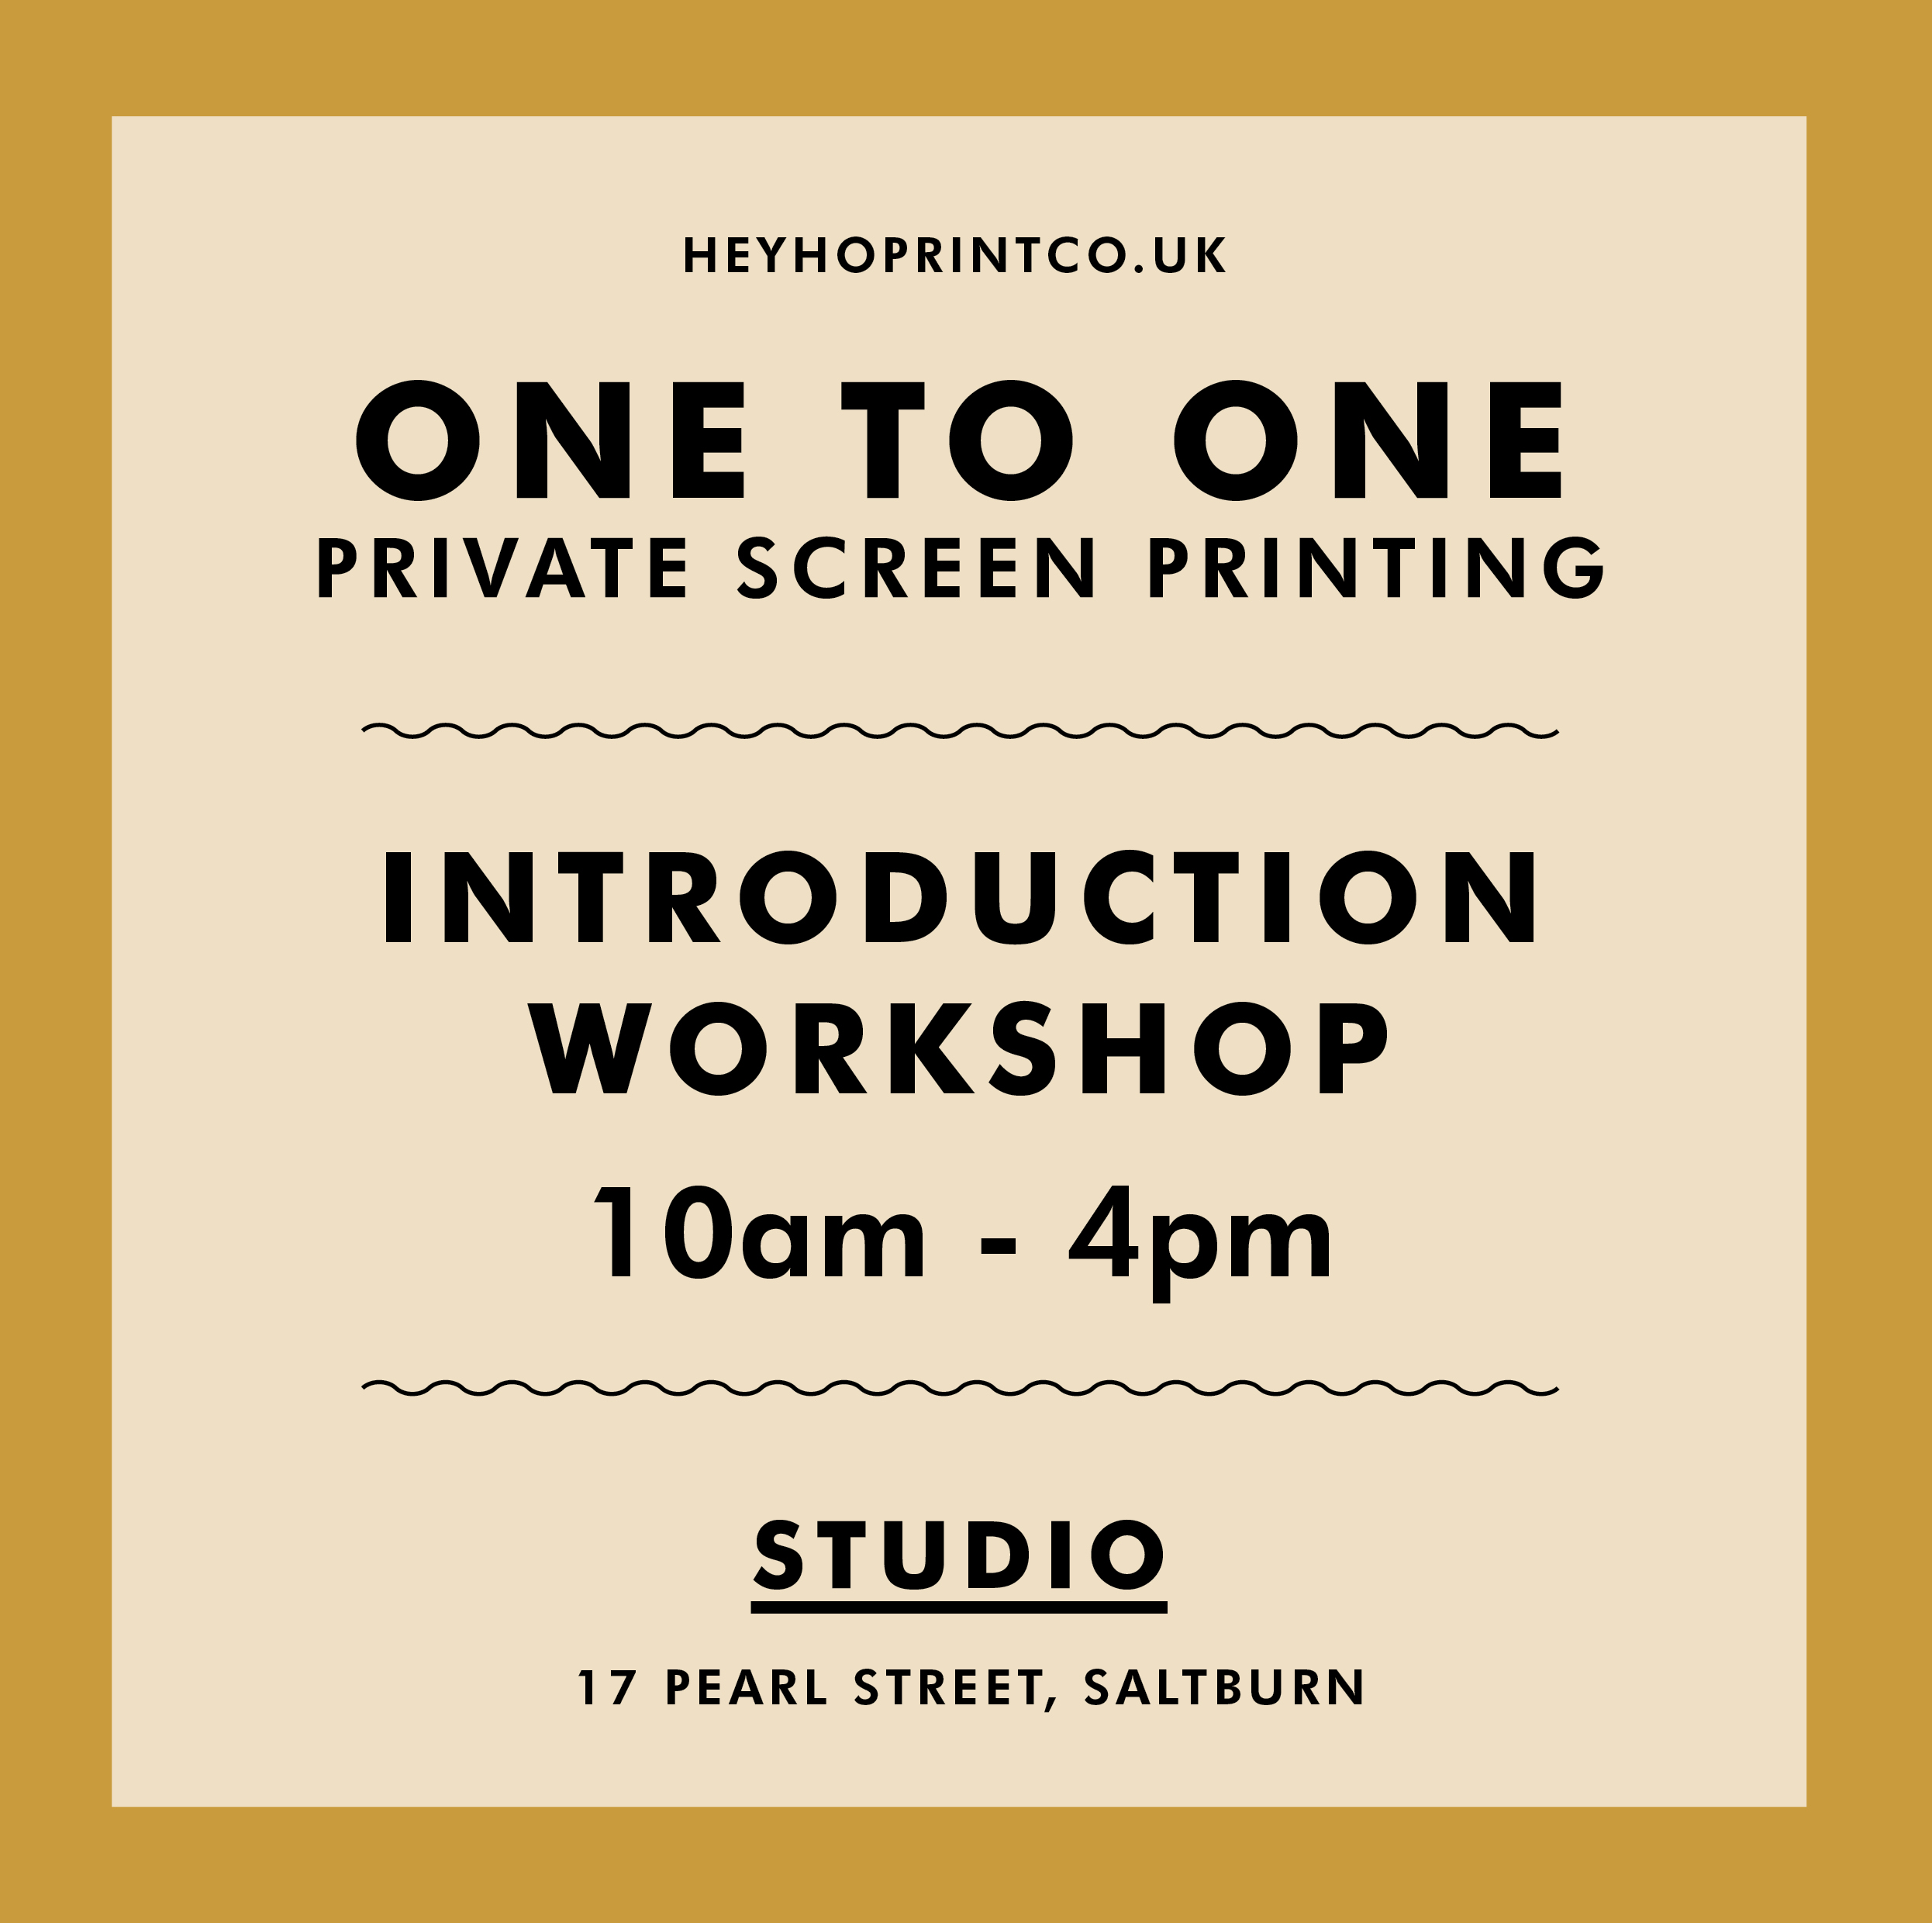 One to One Private Screen Printing Workshop